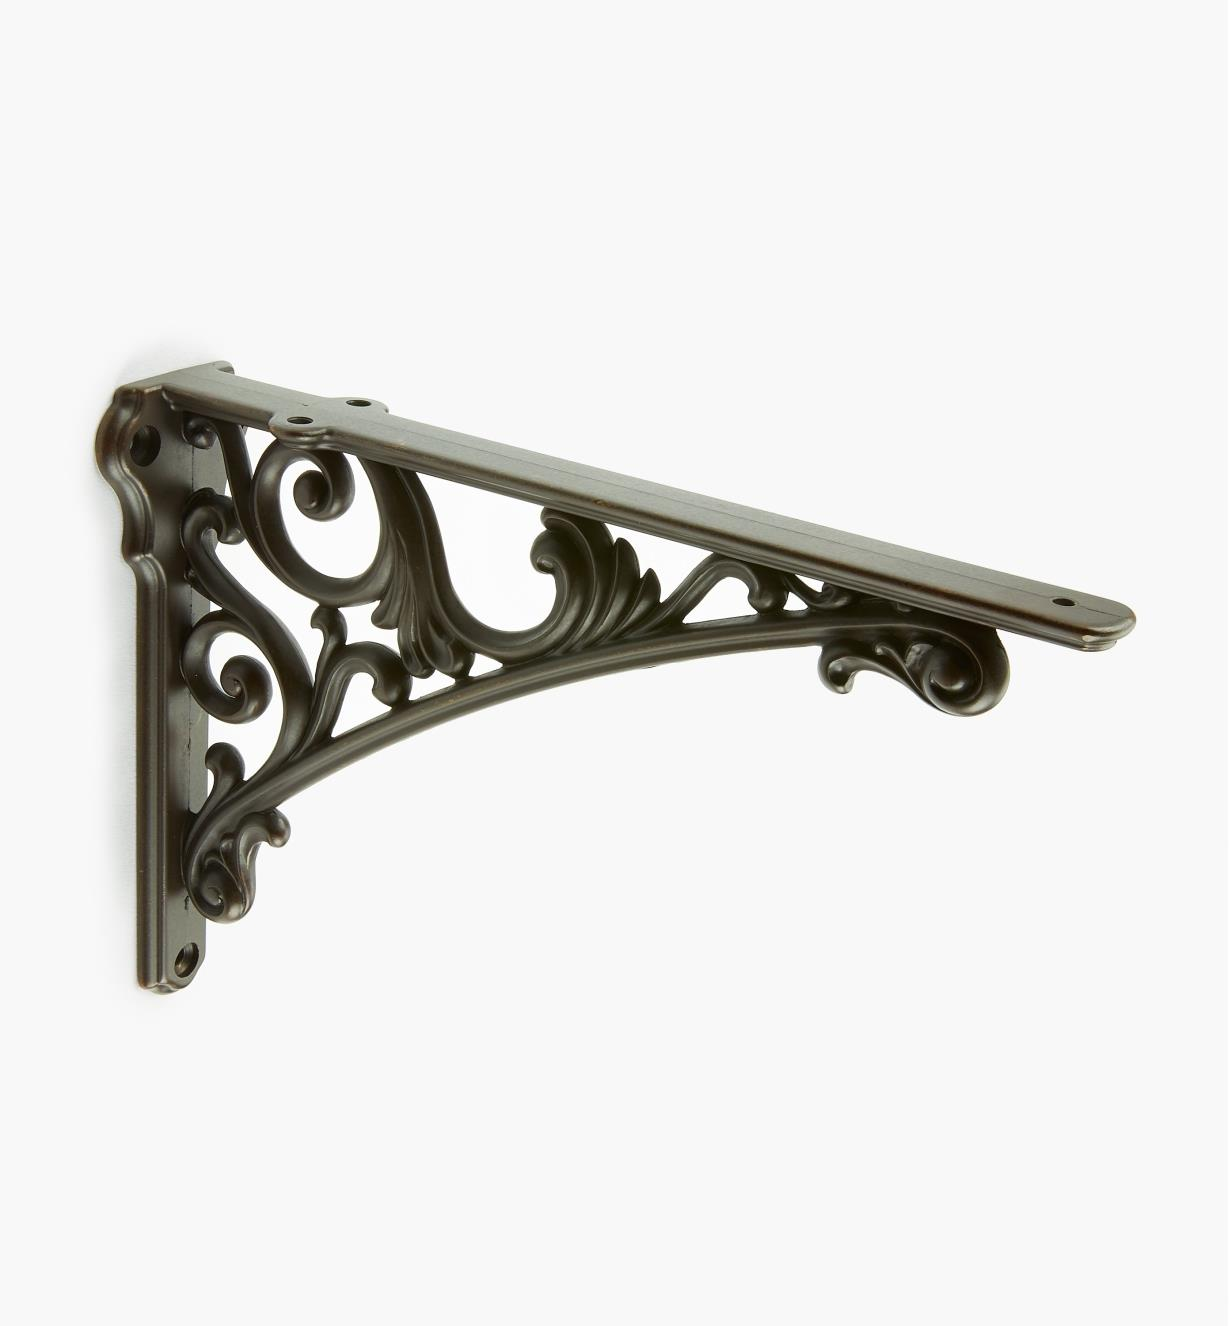 00S2870 - Classico Dark Bronze Shelf Bracket, each